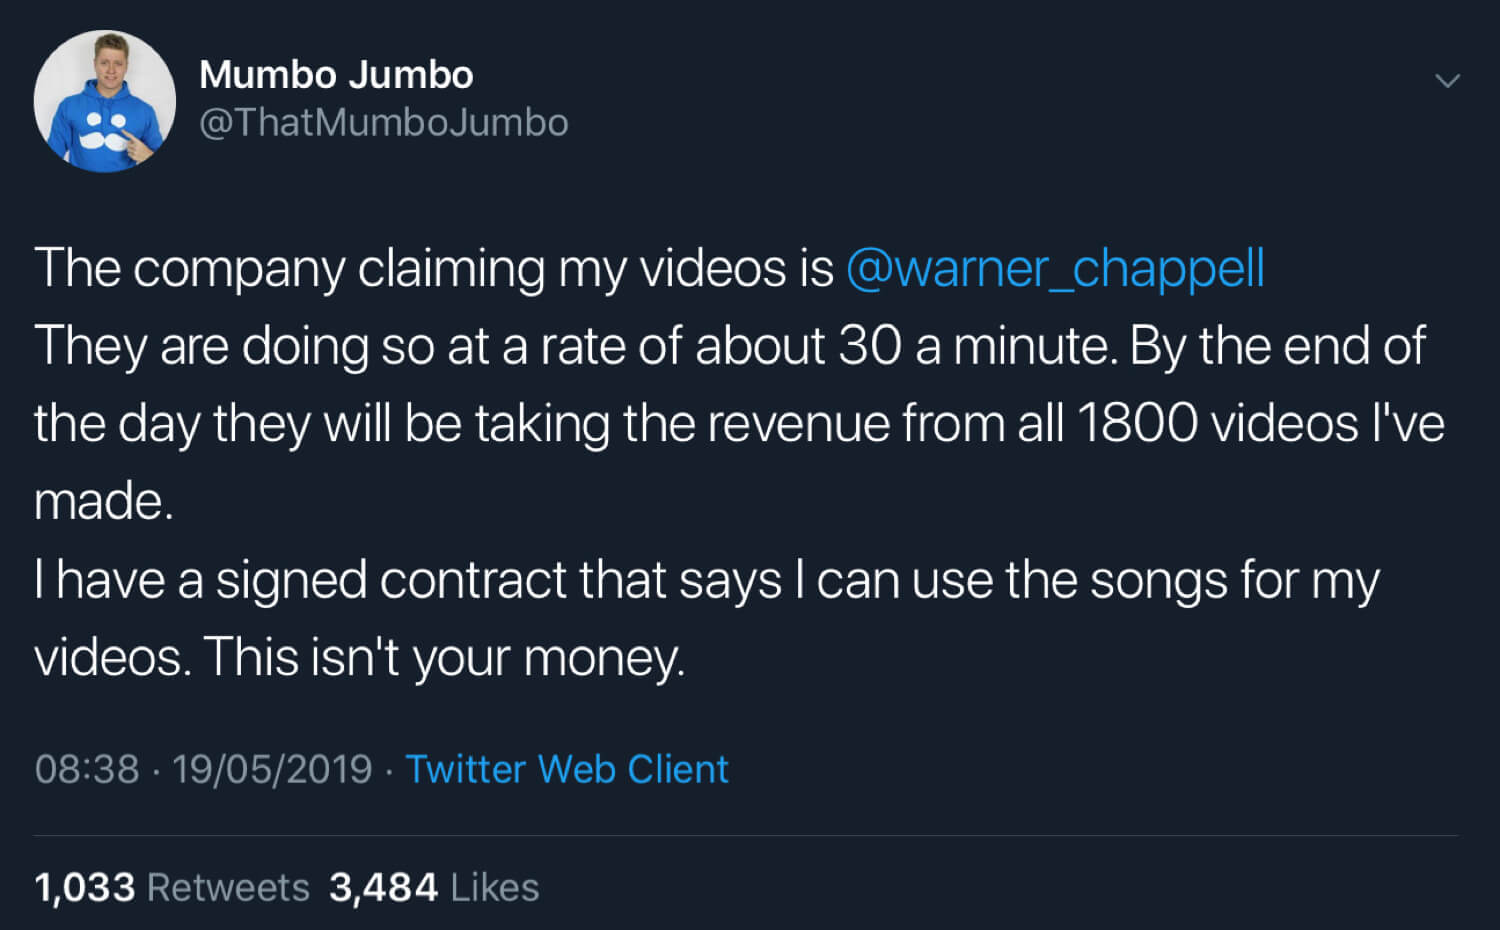 Mumbo Jumbo saying that he has a signed contract allowing him to use the songs in his videos.